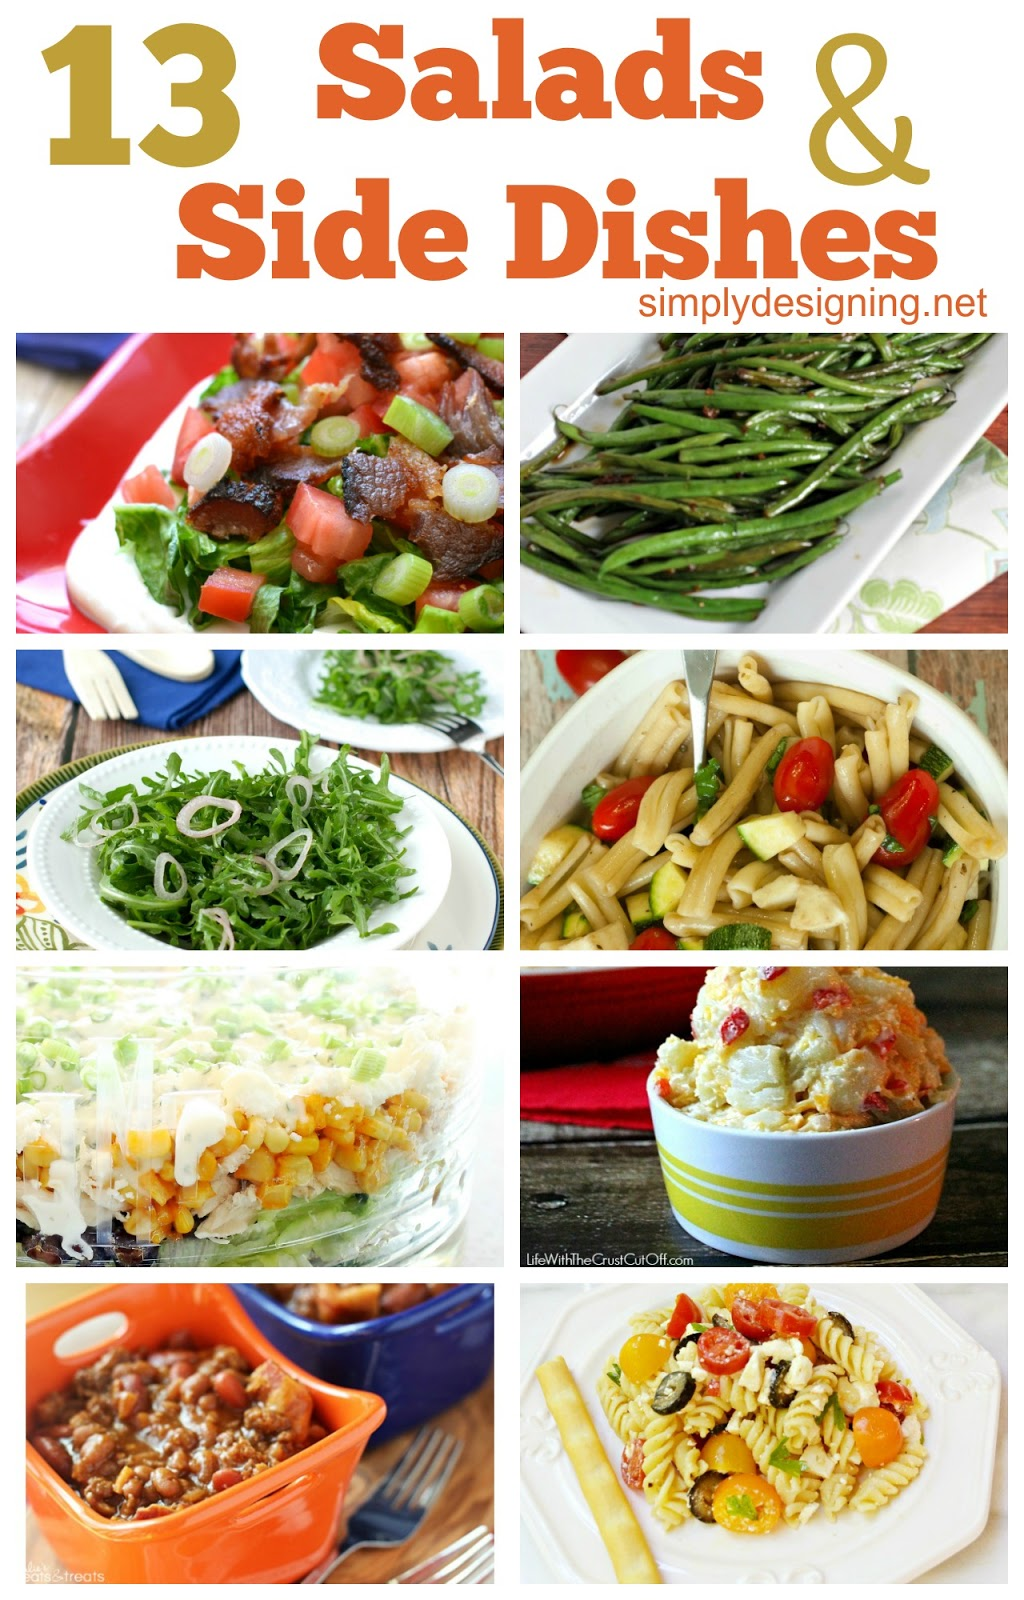 13 Salad and Side Dish Recipes ~ great list of amazing recipes!  Definitely need to pin for later | #dinner #recipes #sidedishes #salads